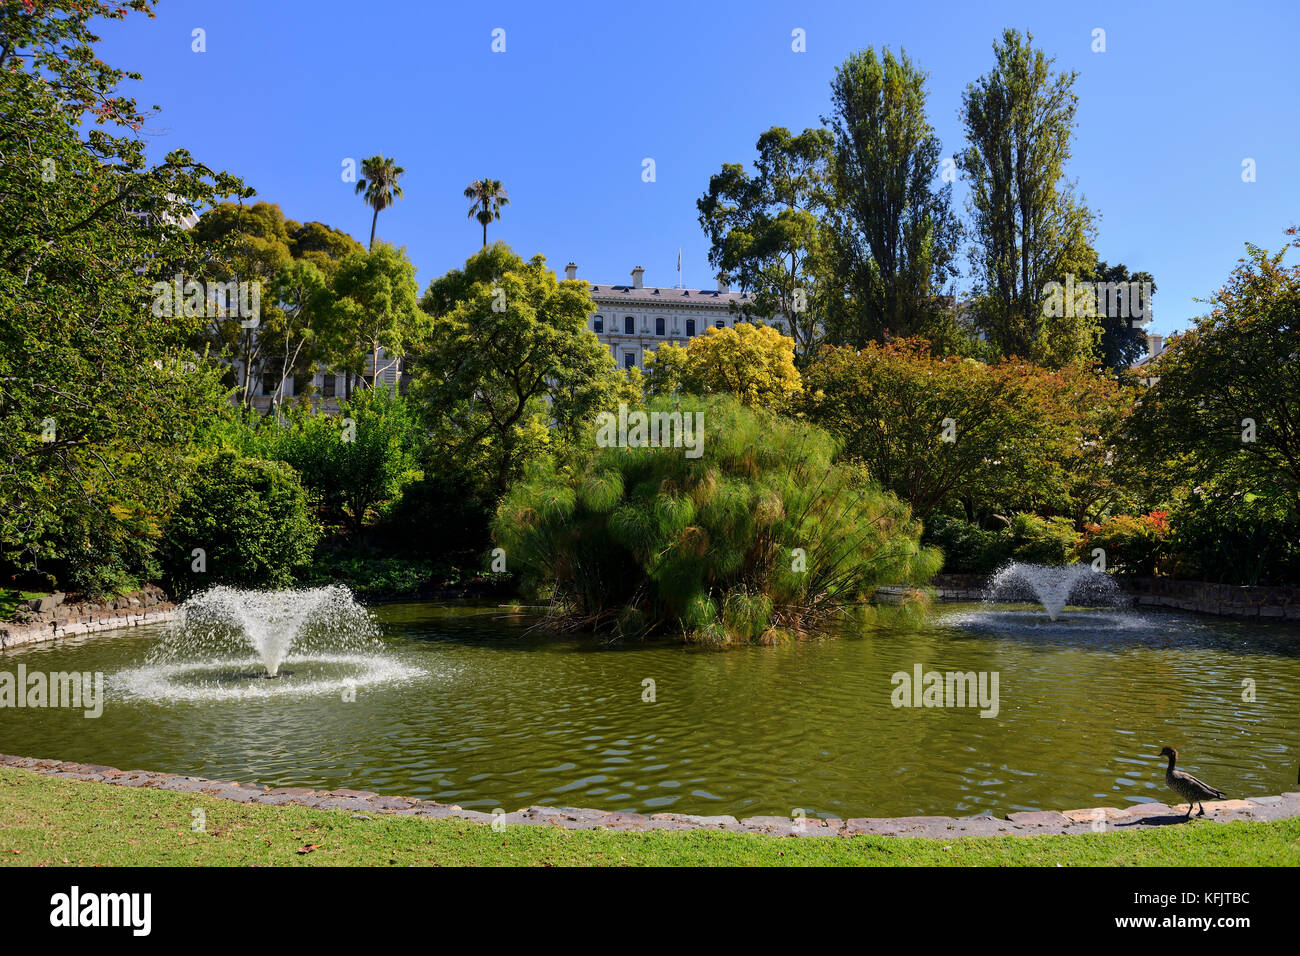 Ornamental pond stock photos ornamental pond stock for Ornamental pond